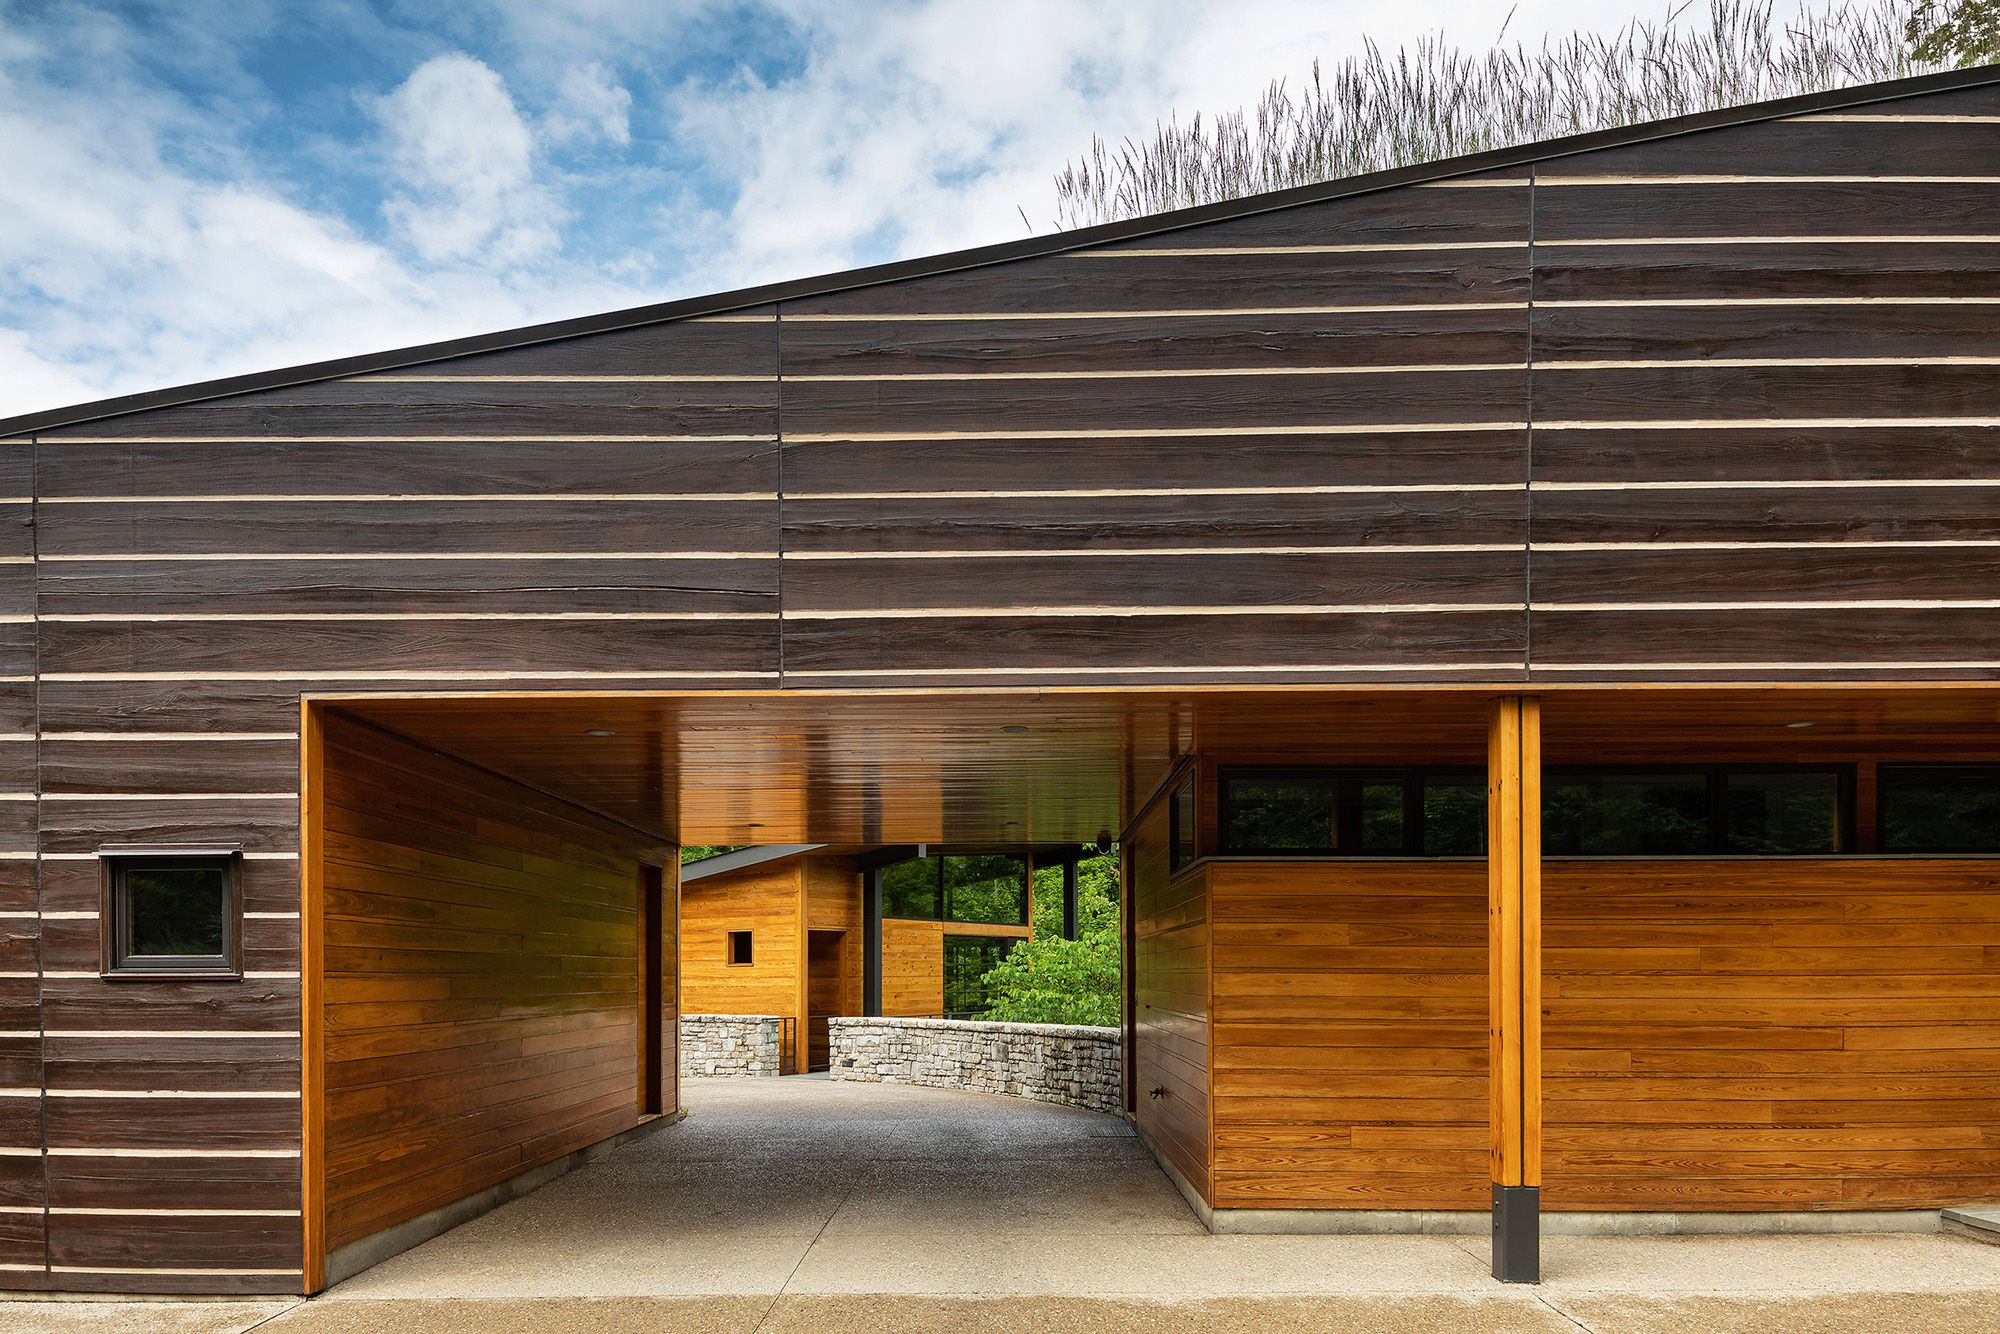 Photo of home with grass roof by Residential Architecture photographer in Cincinnati